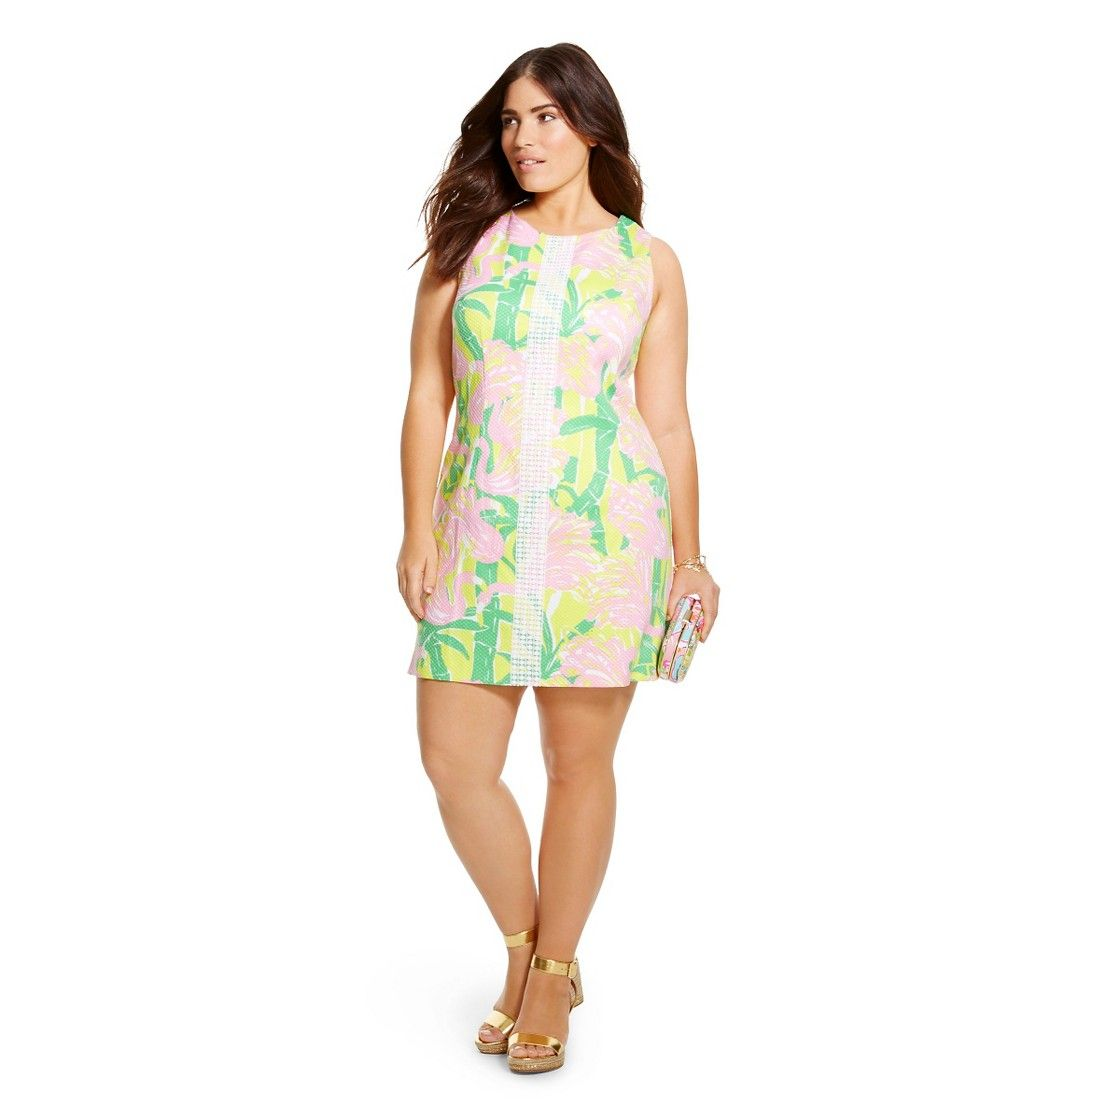 Lilly Pulitzer For Target Womens Plus Size Shift Dress Fan Dance